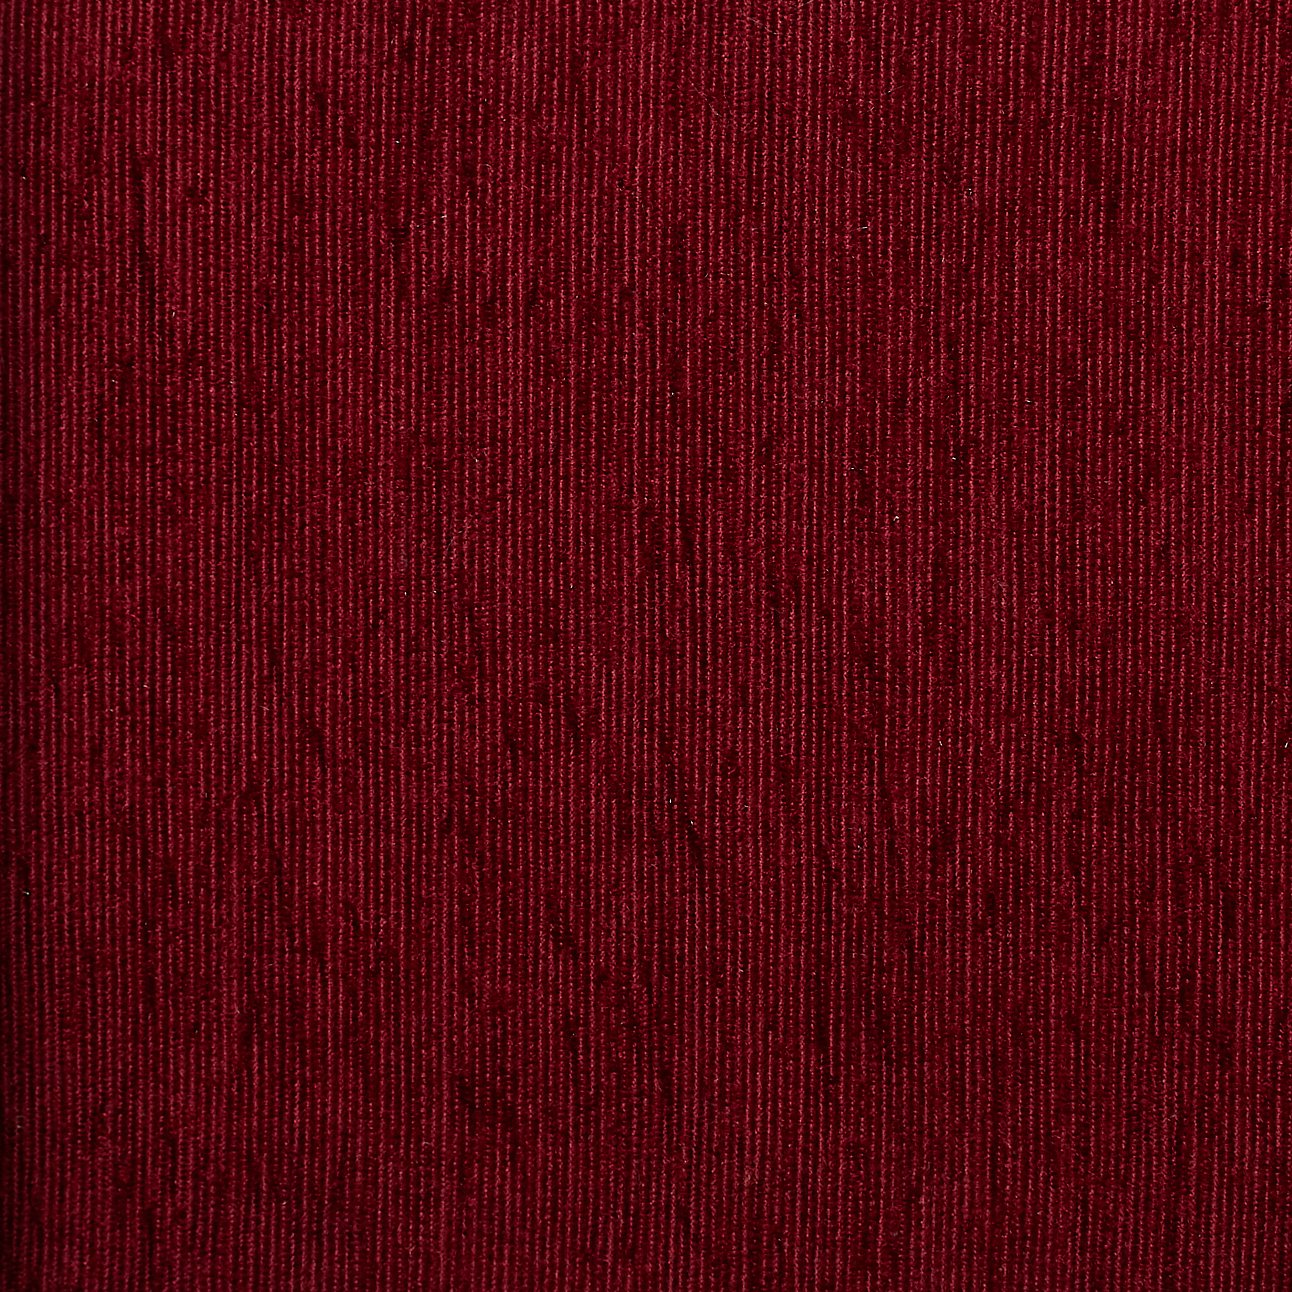 CHENILLE PARIS PLAIN